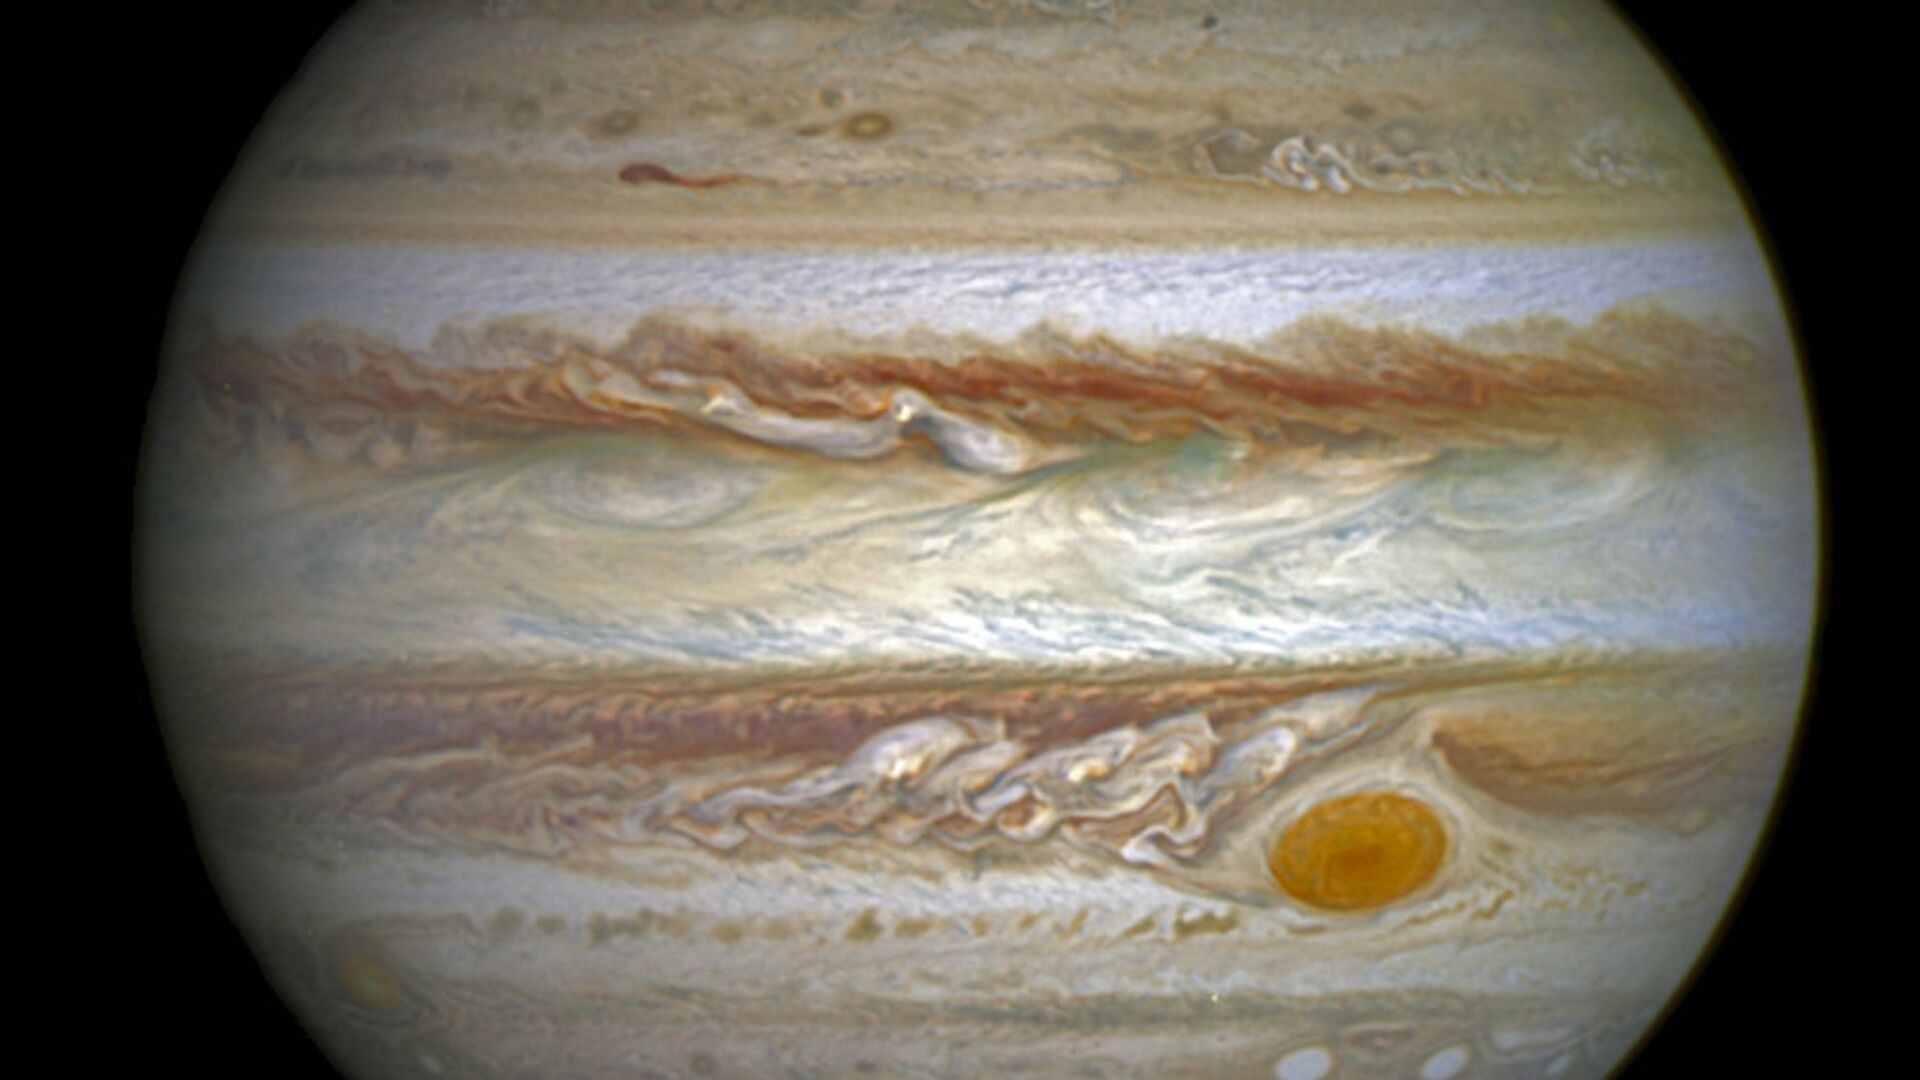 This composite image provided by NASA on Thursday, June 30, 2016 shows auroras on the planet Jupiter. This image produced by NASA using a photograph captured by the Hubble Space Telescope in spring 2014, and ultraviolet observations of the auroras in 2016.  - Sputnik International, 1920, 22.09.2021